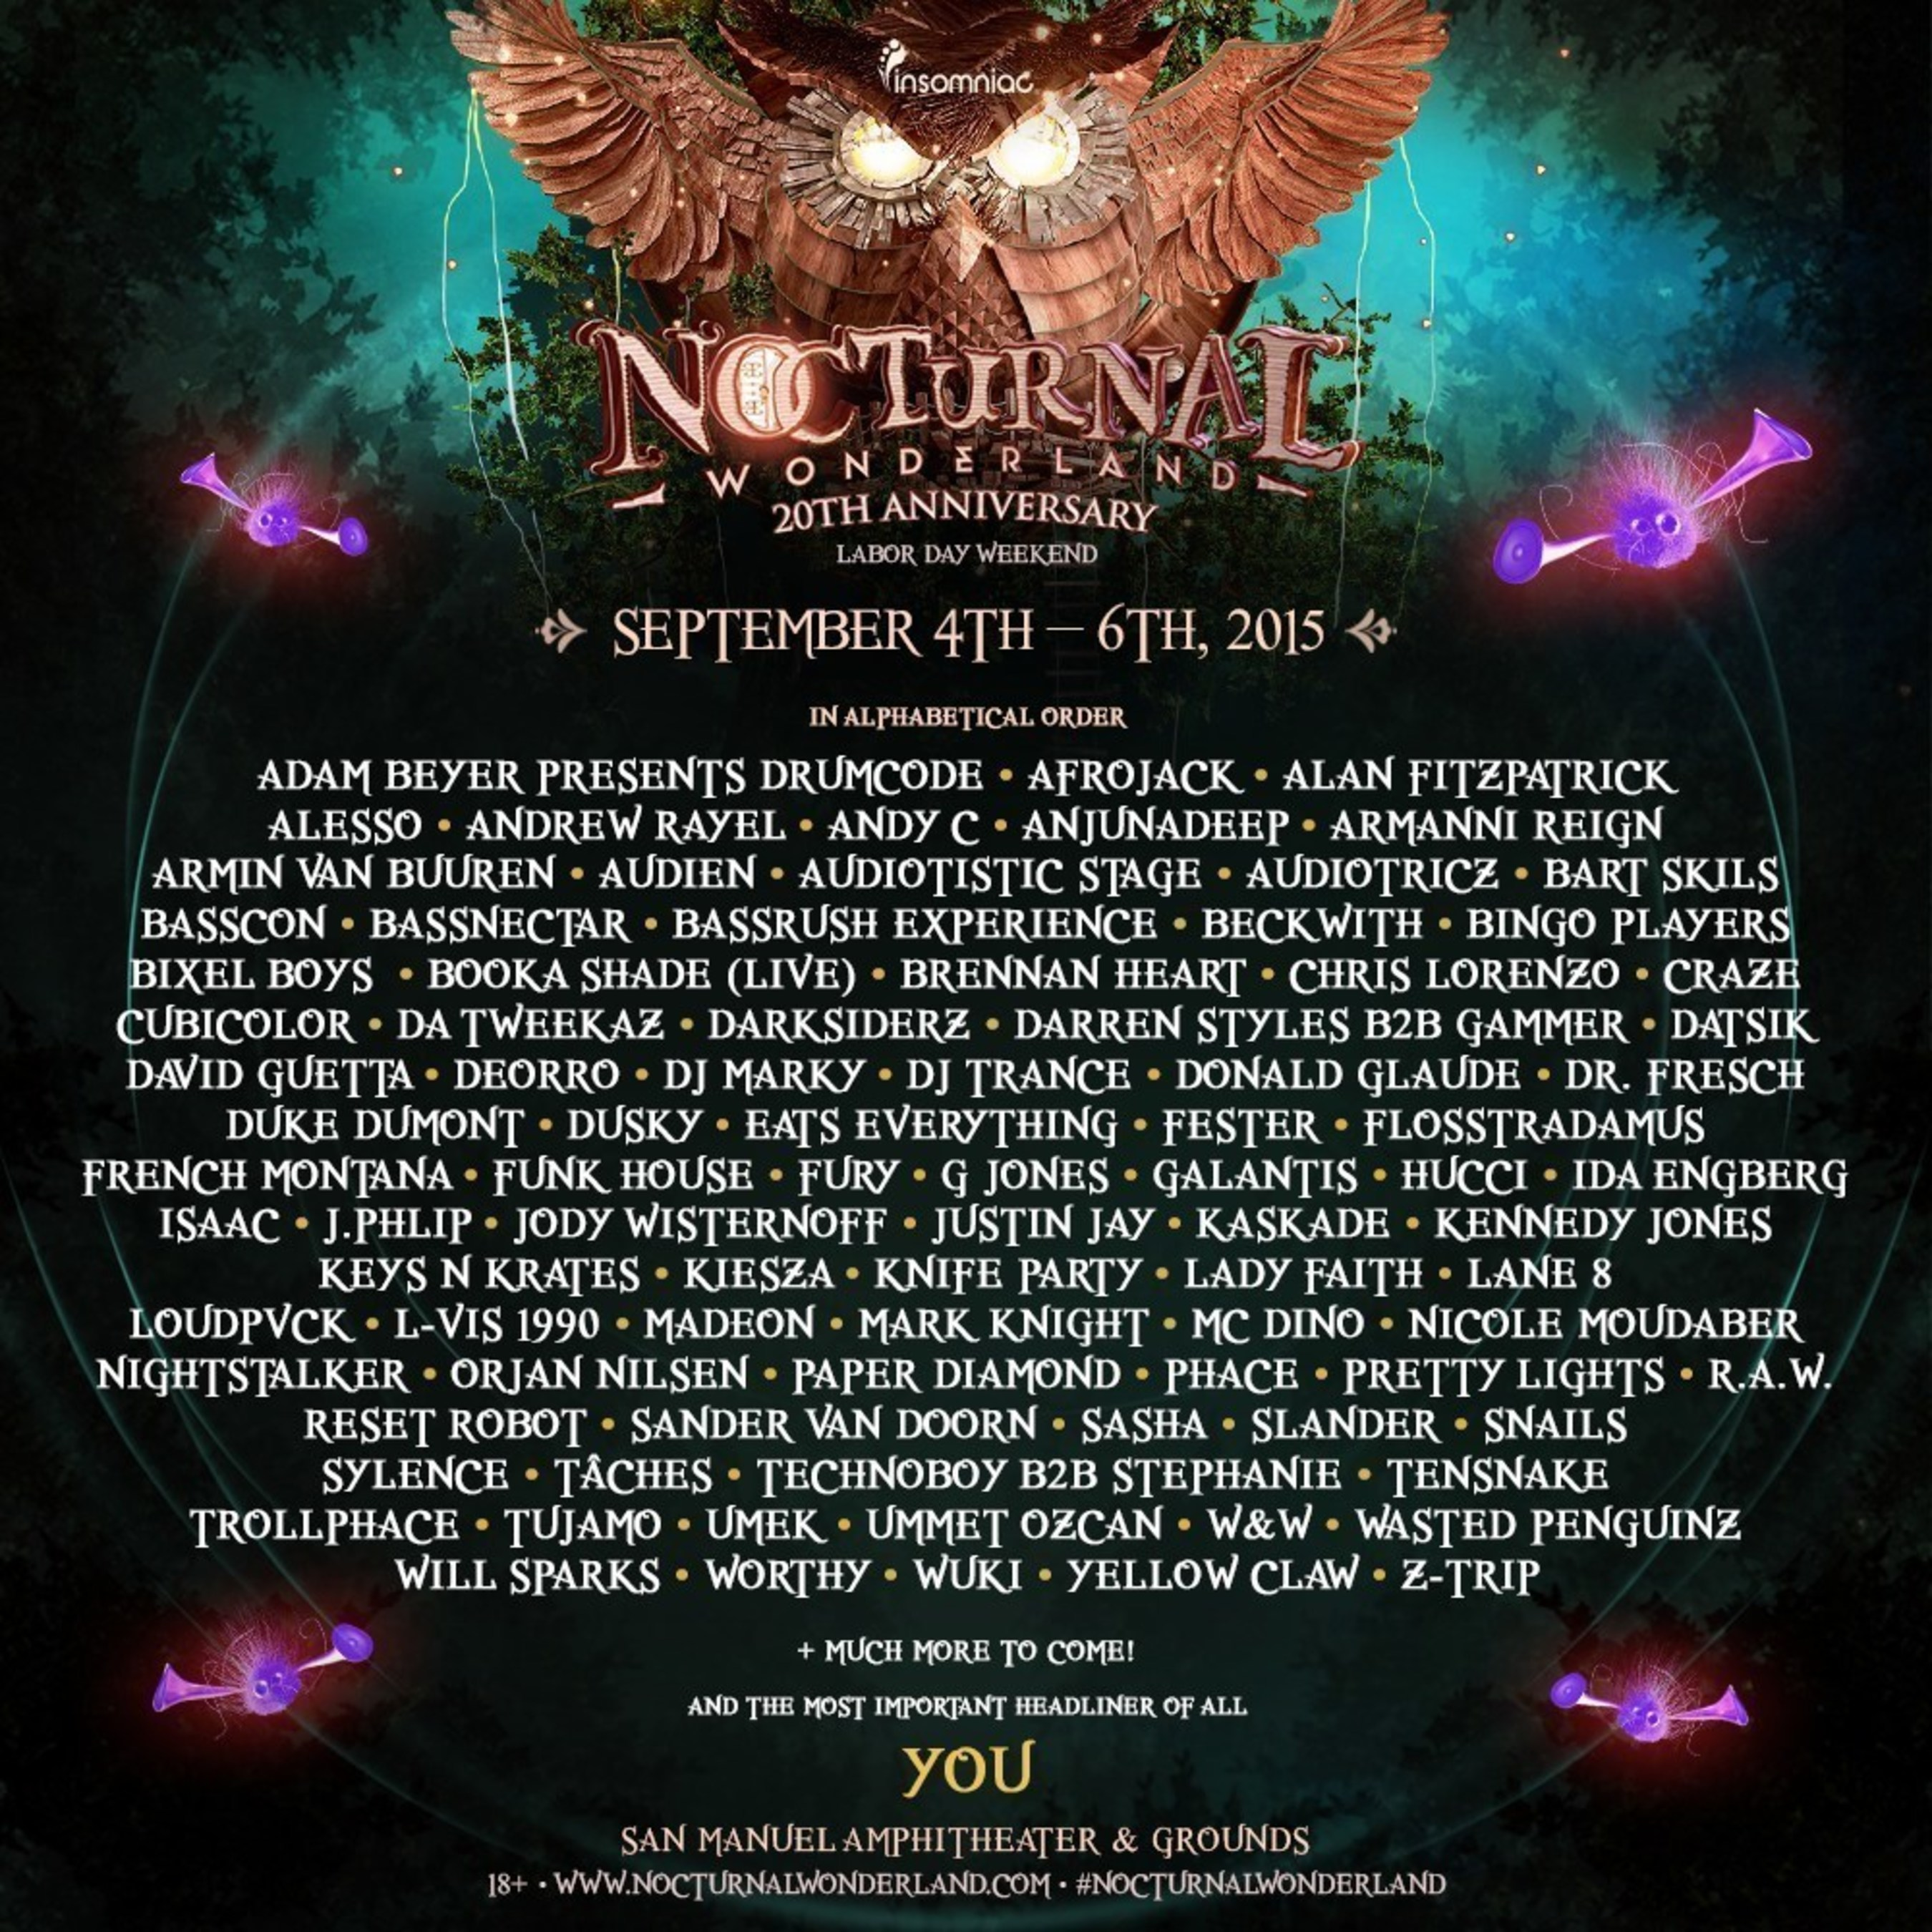 Insomniac Reveals Impressive Artist Line-Up for 20th Anniversary of Nocturnal Wonderland